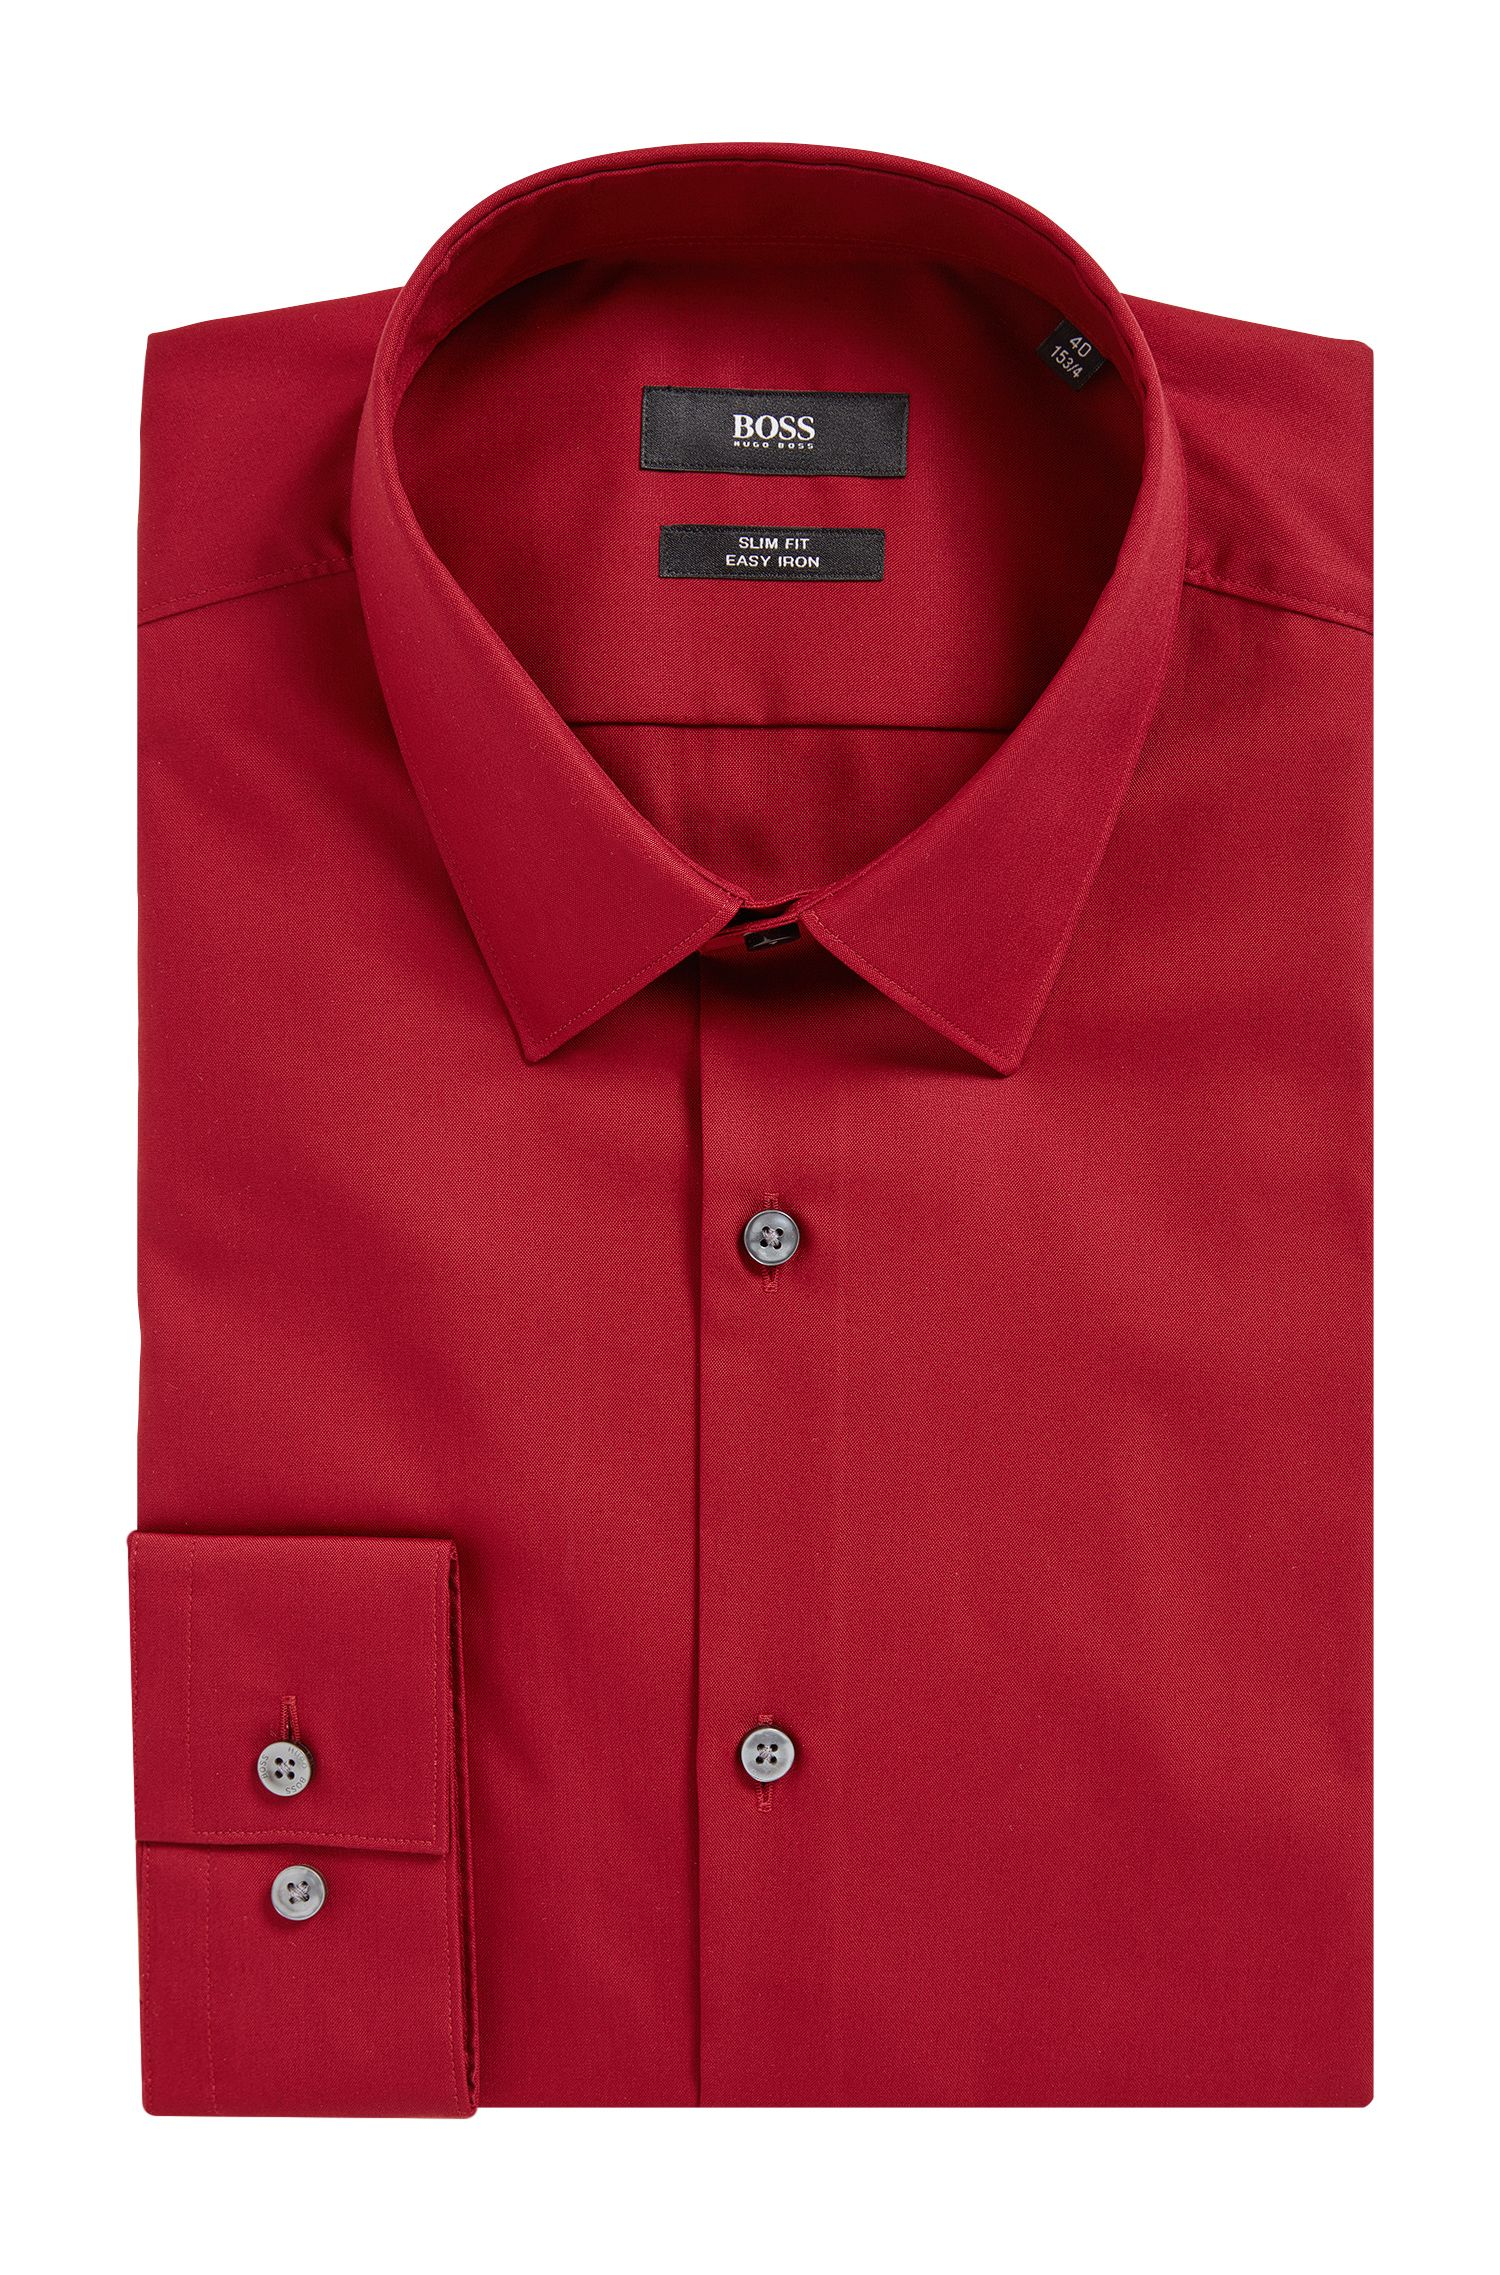 Easy Iron Cotton Dress Shirt, Slim Fit | Isko